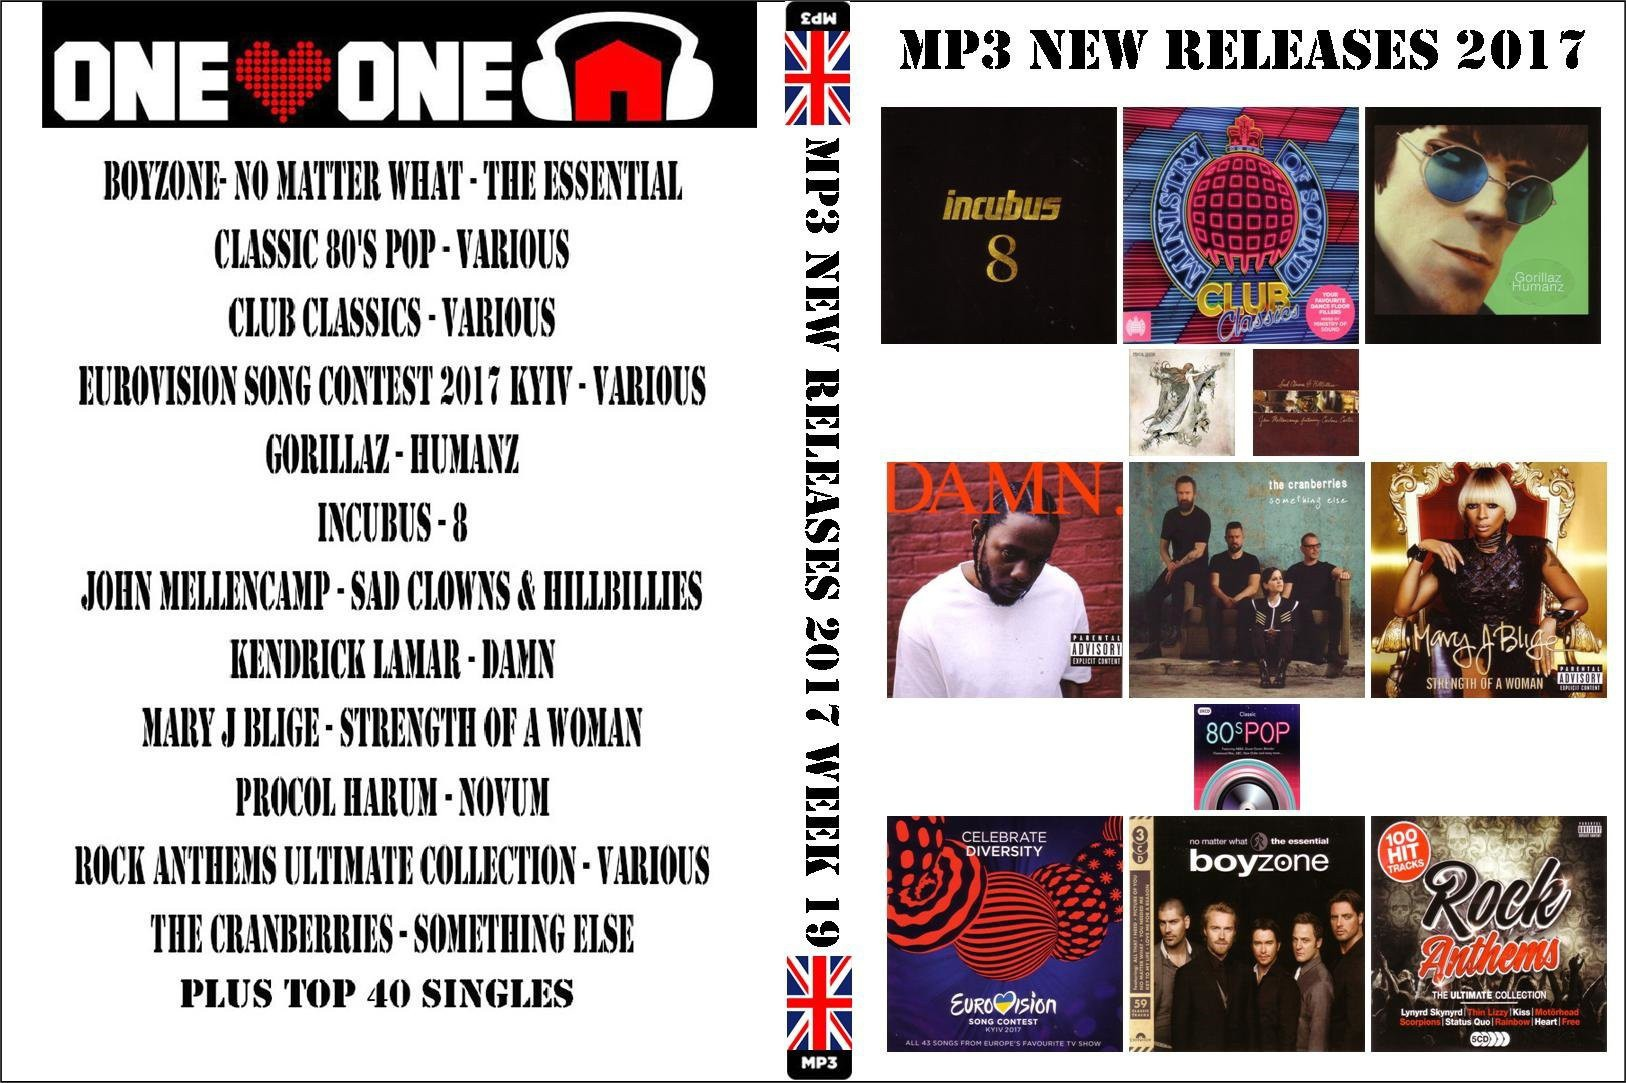 MP3 New Releases 2017 Week 19